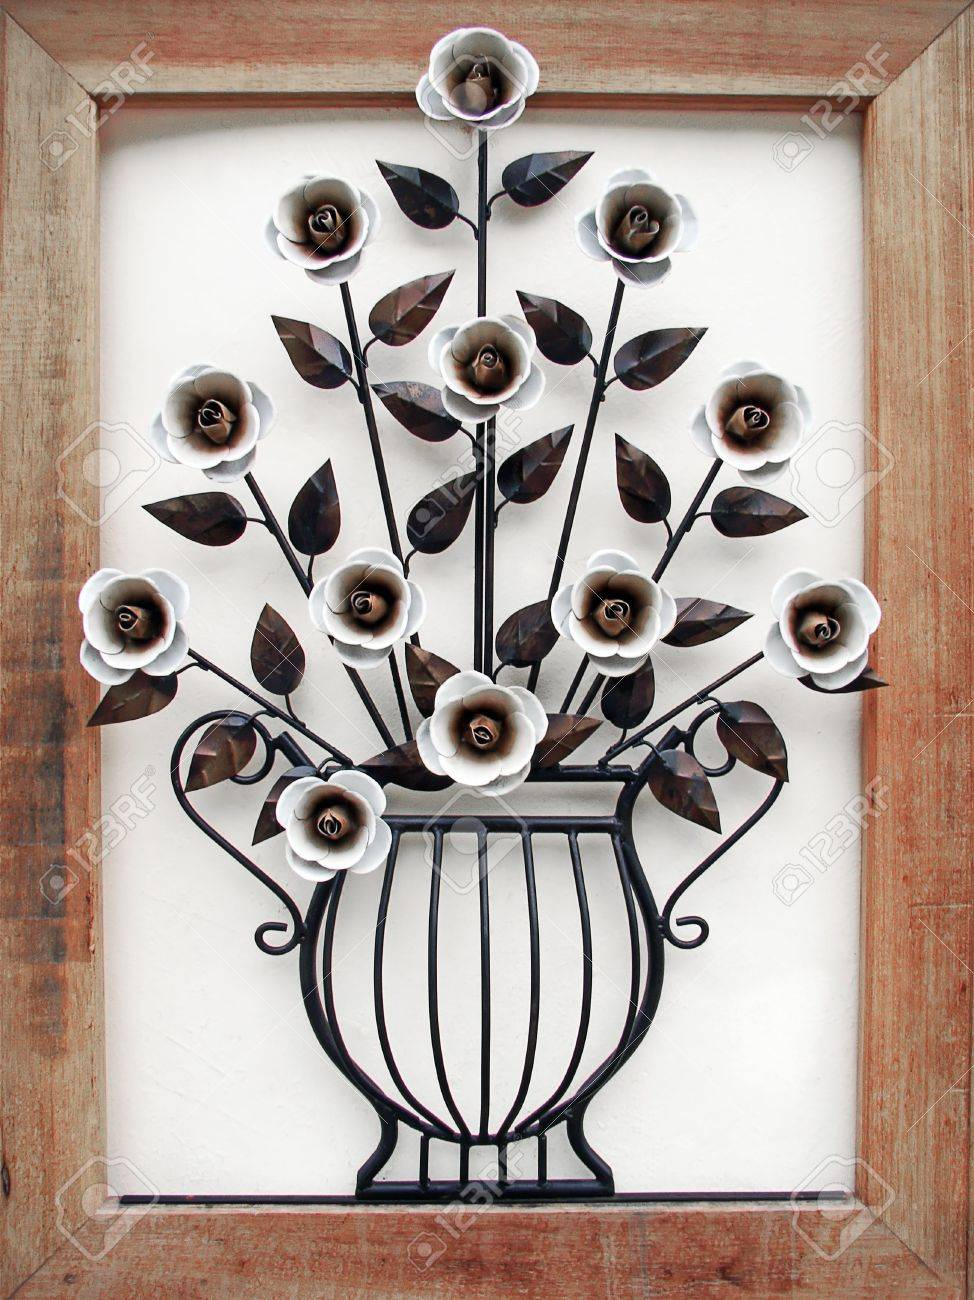 metal made flower and vase with wood frame Stock Photo - 6364932